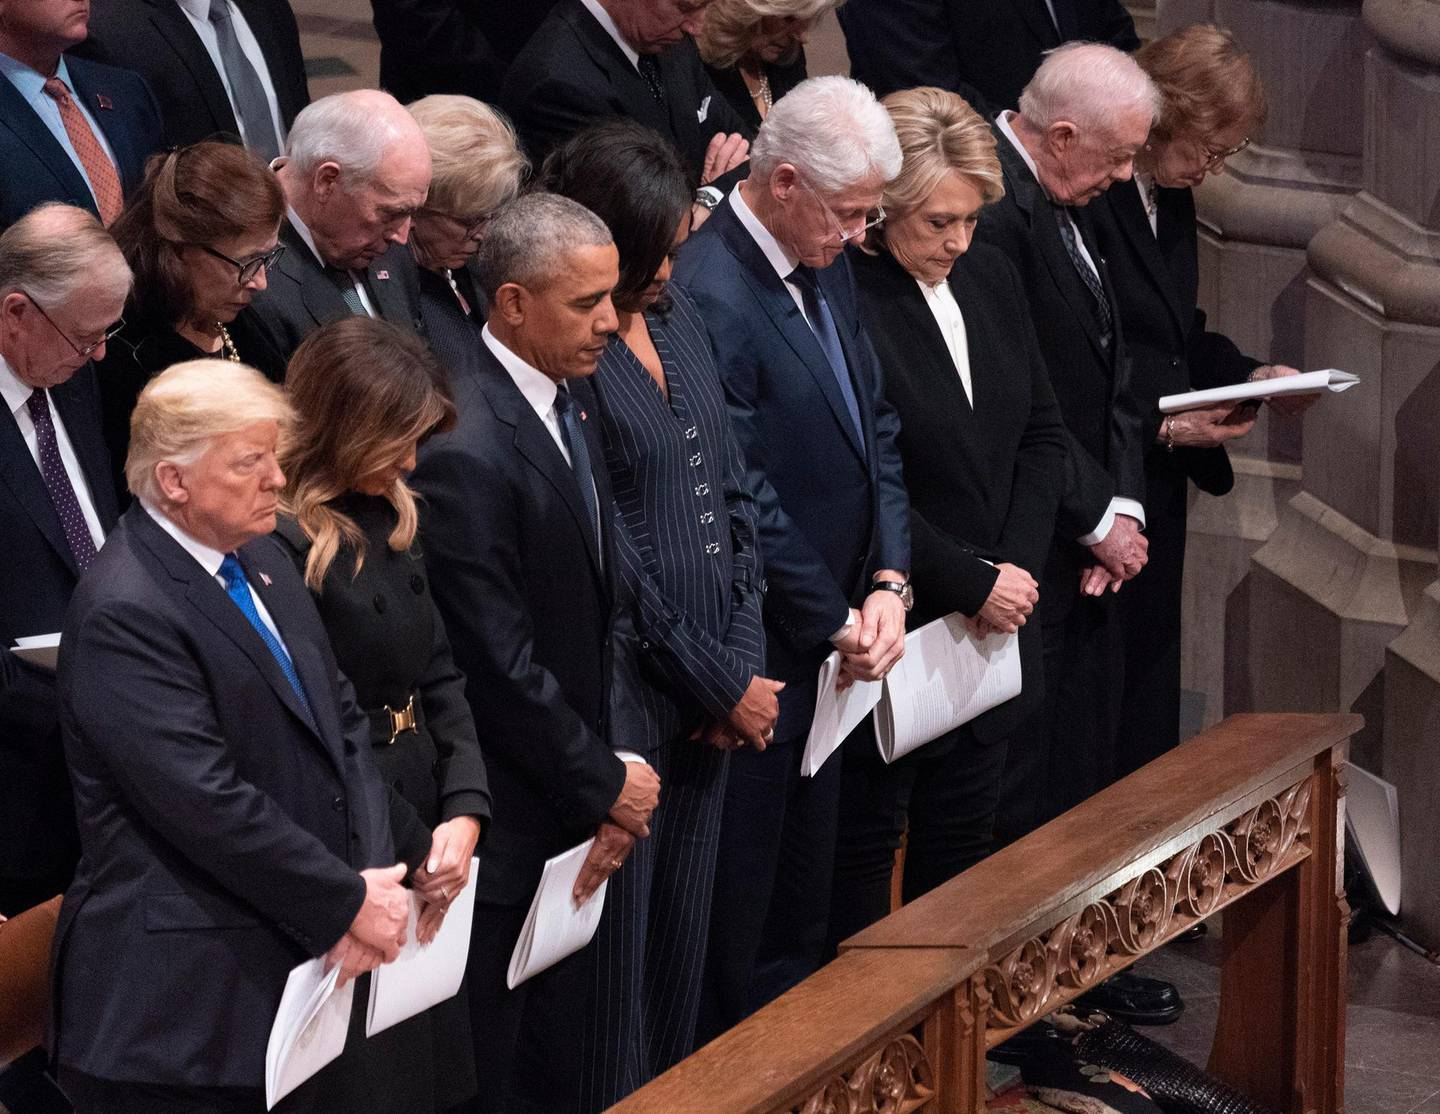 epa07210876 (L-R) US President Donald J. Trump, First Lady Melania Trump, Former US President Barack Obama, Former First Lady Michelle Obama, Former US President Bill Clinton, Former US Secretary of State Hillary Clinton, Former US President Jimmy Carter and Former First Lady Rosalyn Carter attend the state funeral service of former President George H.W. Bush at the National Cathedral, in Washington, DC, USA, 05 December 2018. George H. W. Bush, the 41st President of the United States (1989-1993), died in his Houston, Texas, USA, home surrounded by family and friends on 30 November 2018. The body will return to Houston for another funeral service before being transported by train to the George Bush Presidential Library and Museum for internment.  EPA/Chris Kleponis / POOL